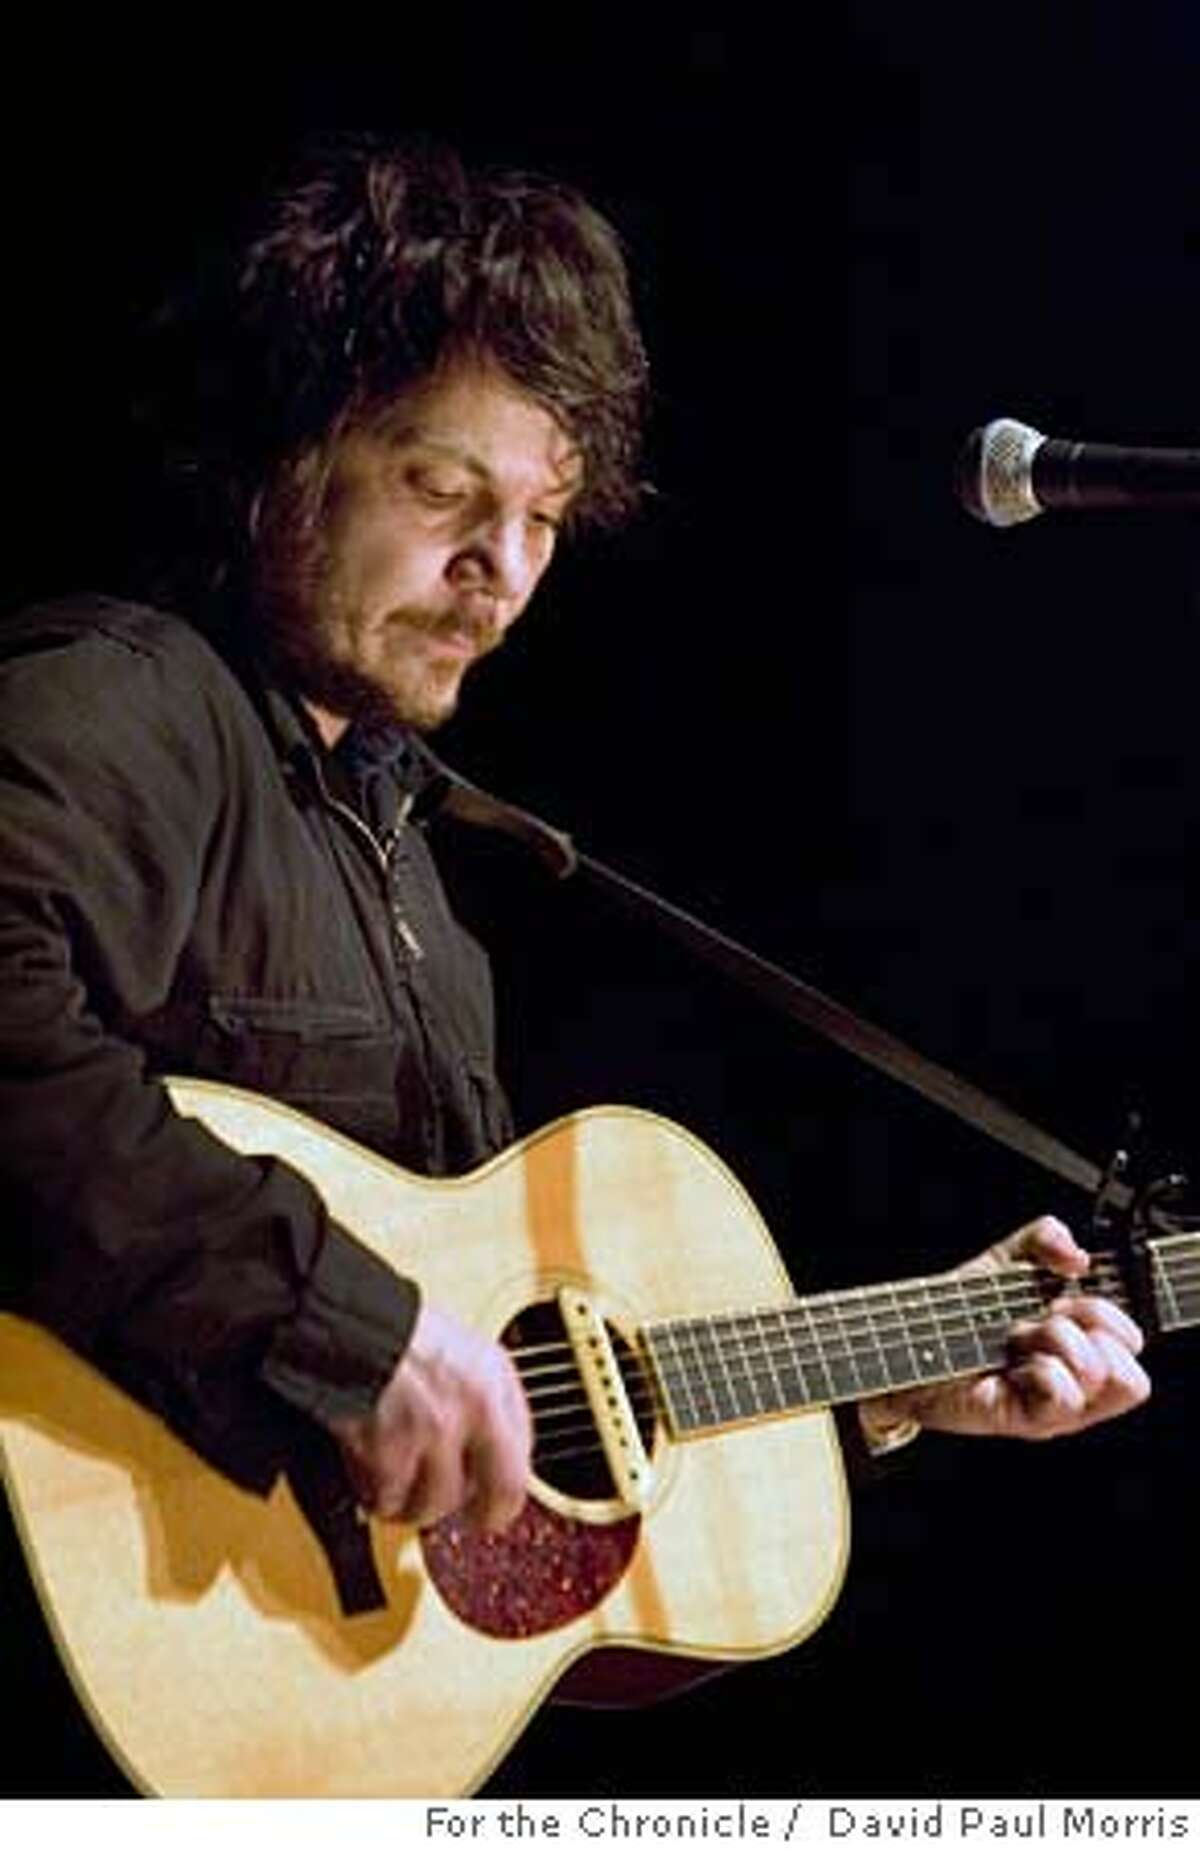 SAN FRANCISCO, CA - FEB 08: Jeff Tweedy, guitarist and front man for the band Wilco appears at the Filmore during his solo tour on February 8, 2006 in San Francisco, California. (Photo by David Paul Morris/The Chronicle)